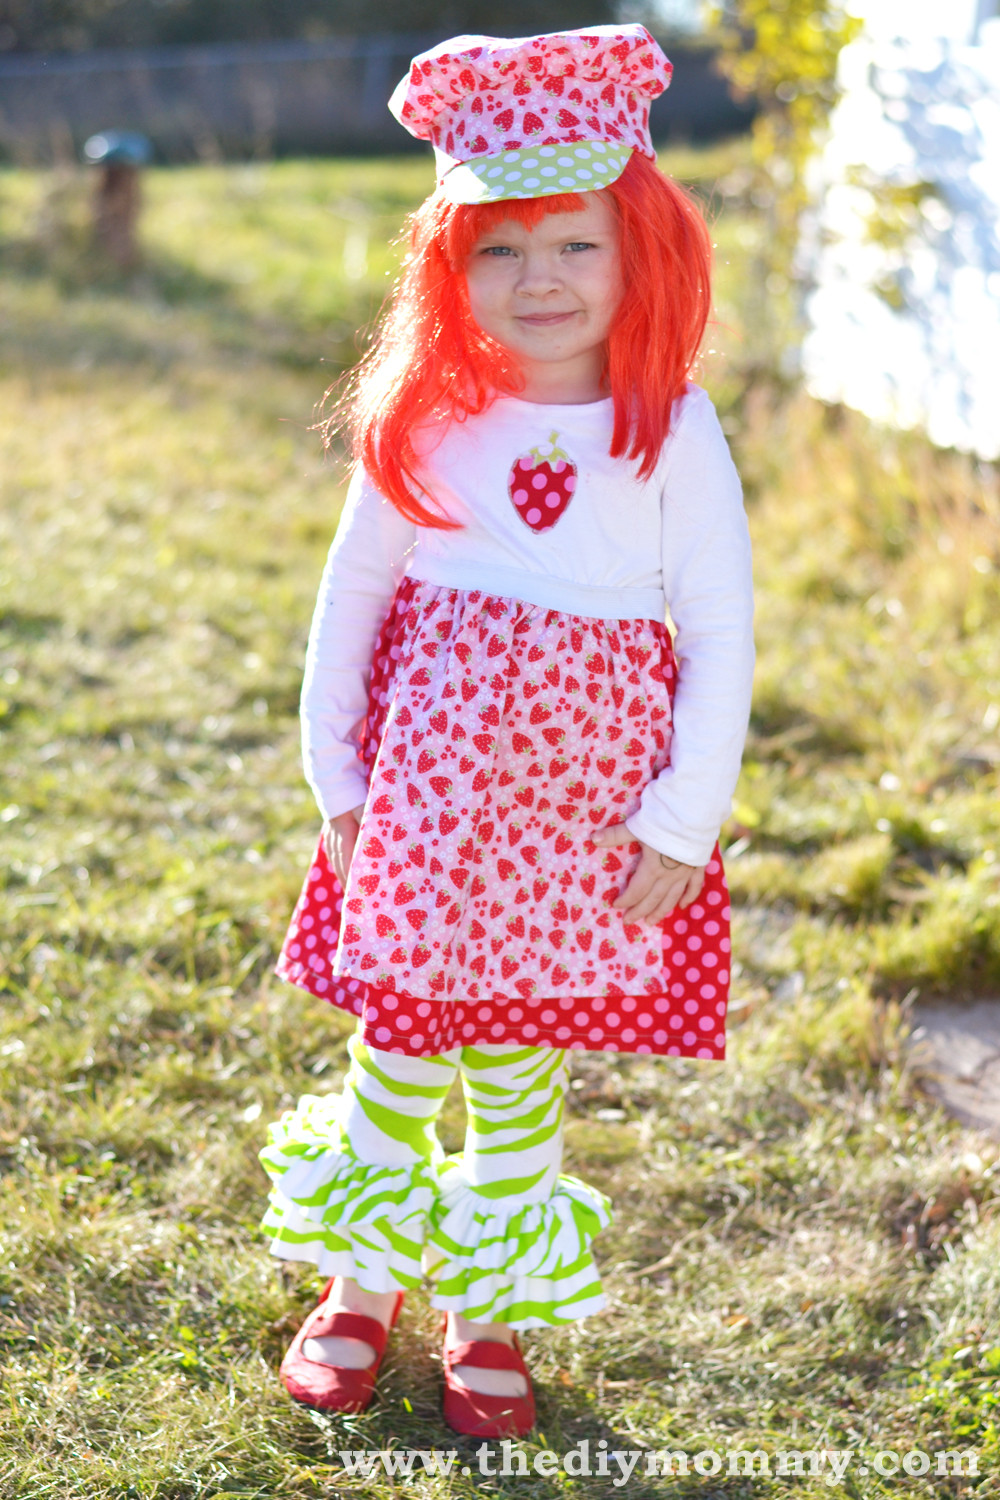 Strawberry Shortcake Halloween Costume  Sew a Strawberry Shortcake Costume